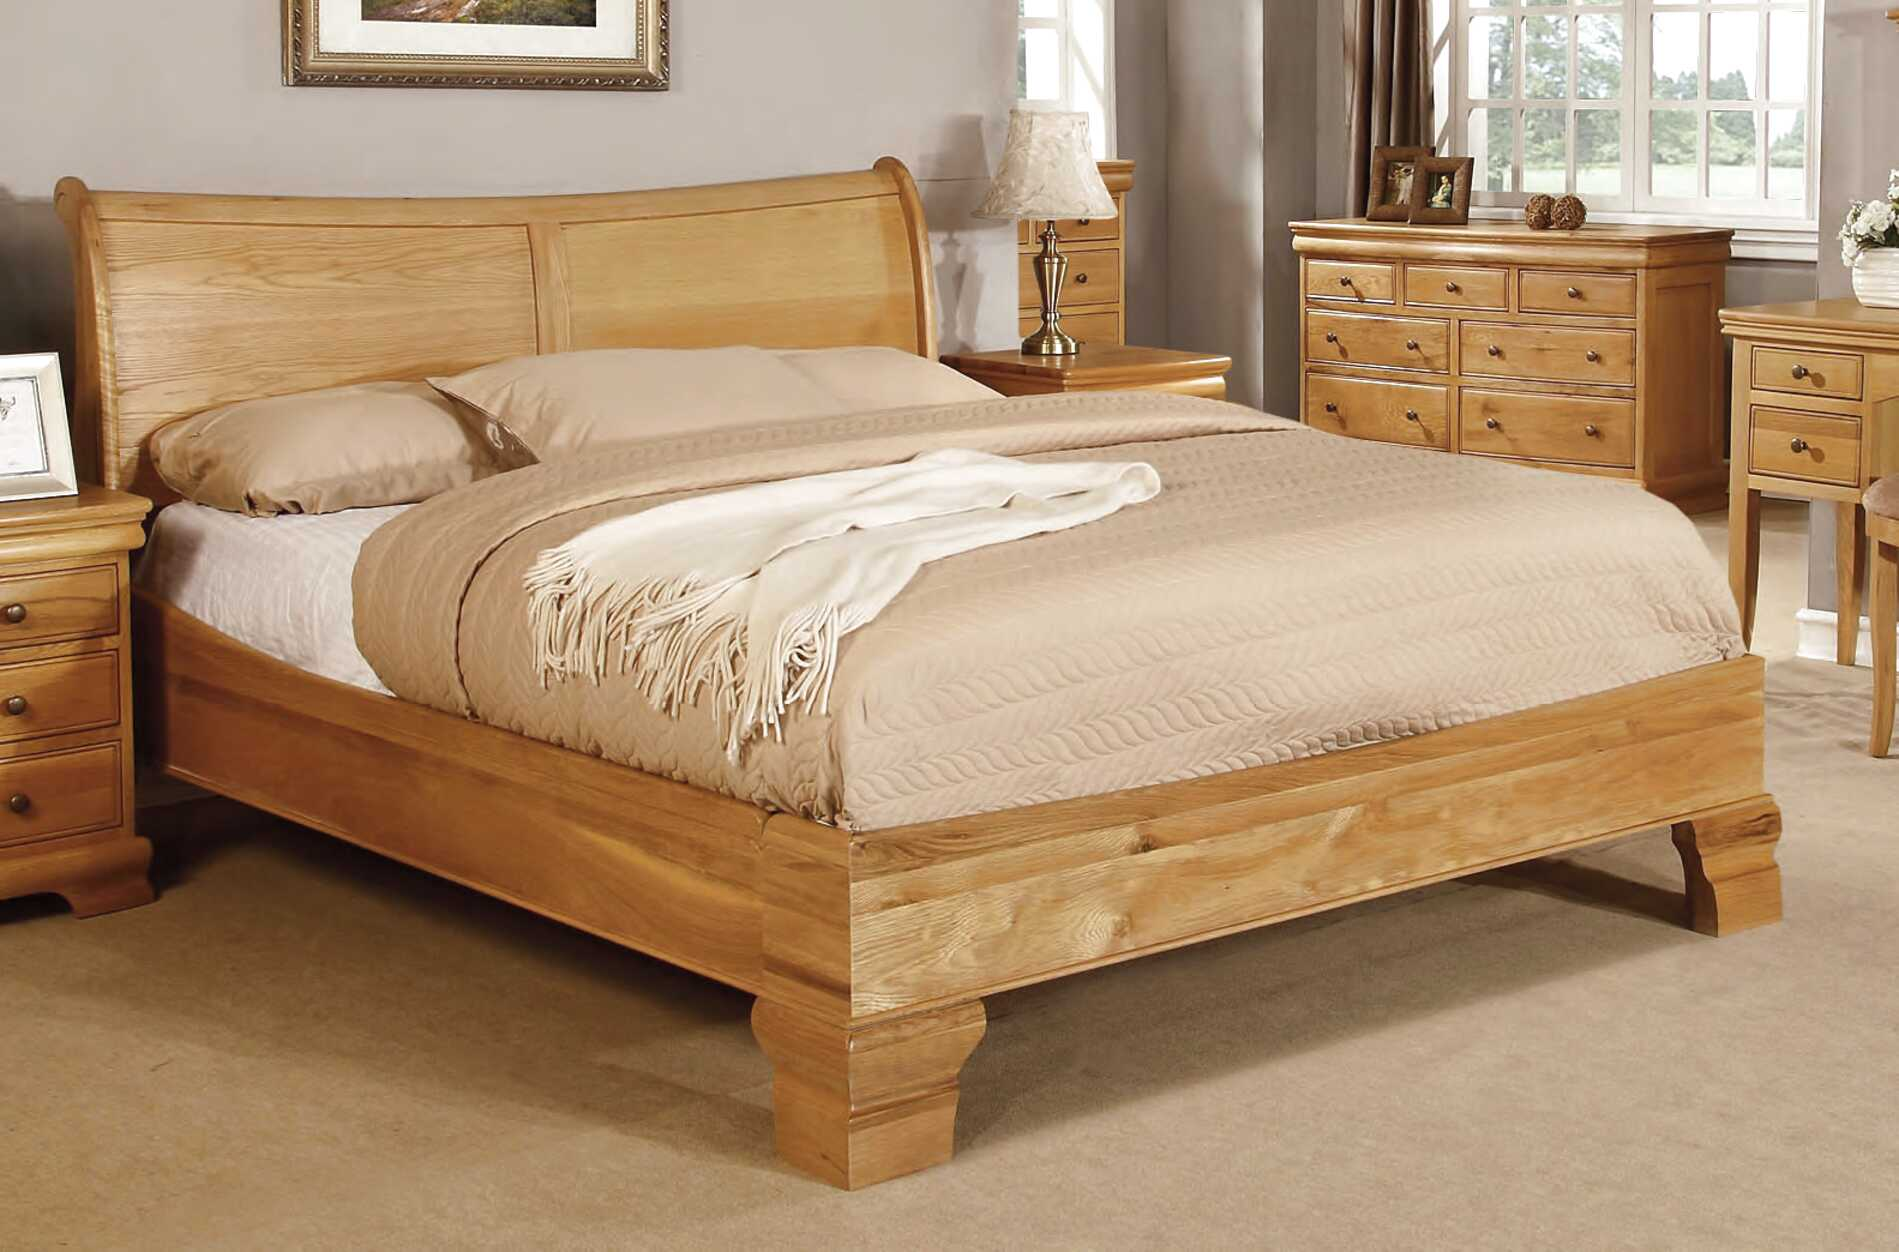 Oak Bed Headboards For Sale Only 2 Left At 70